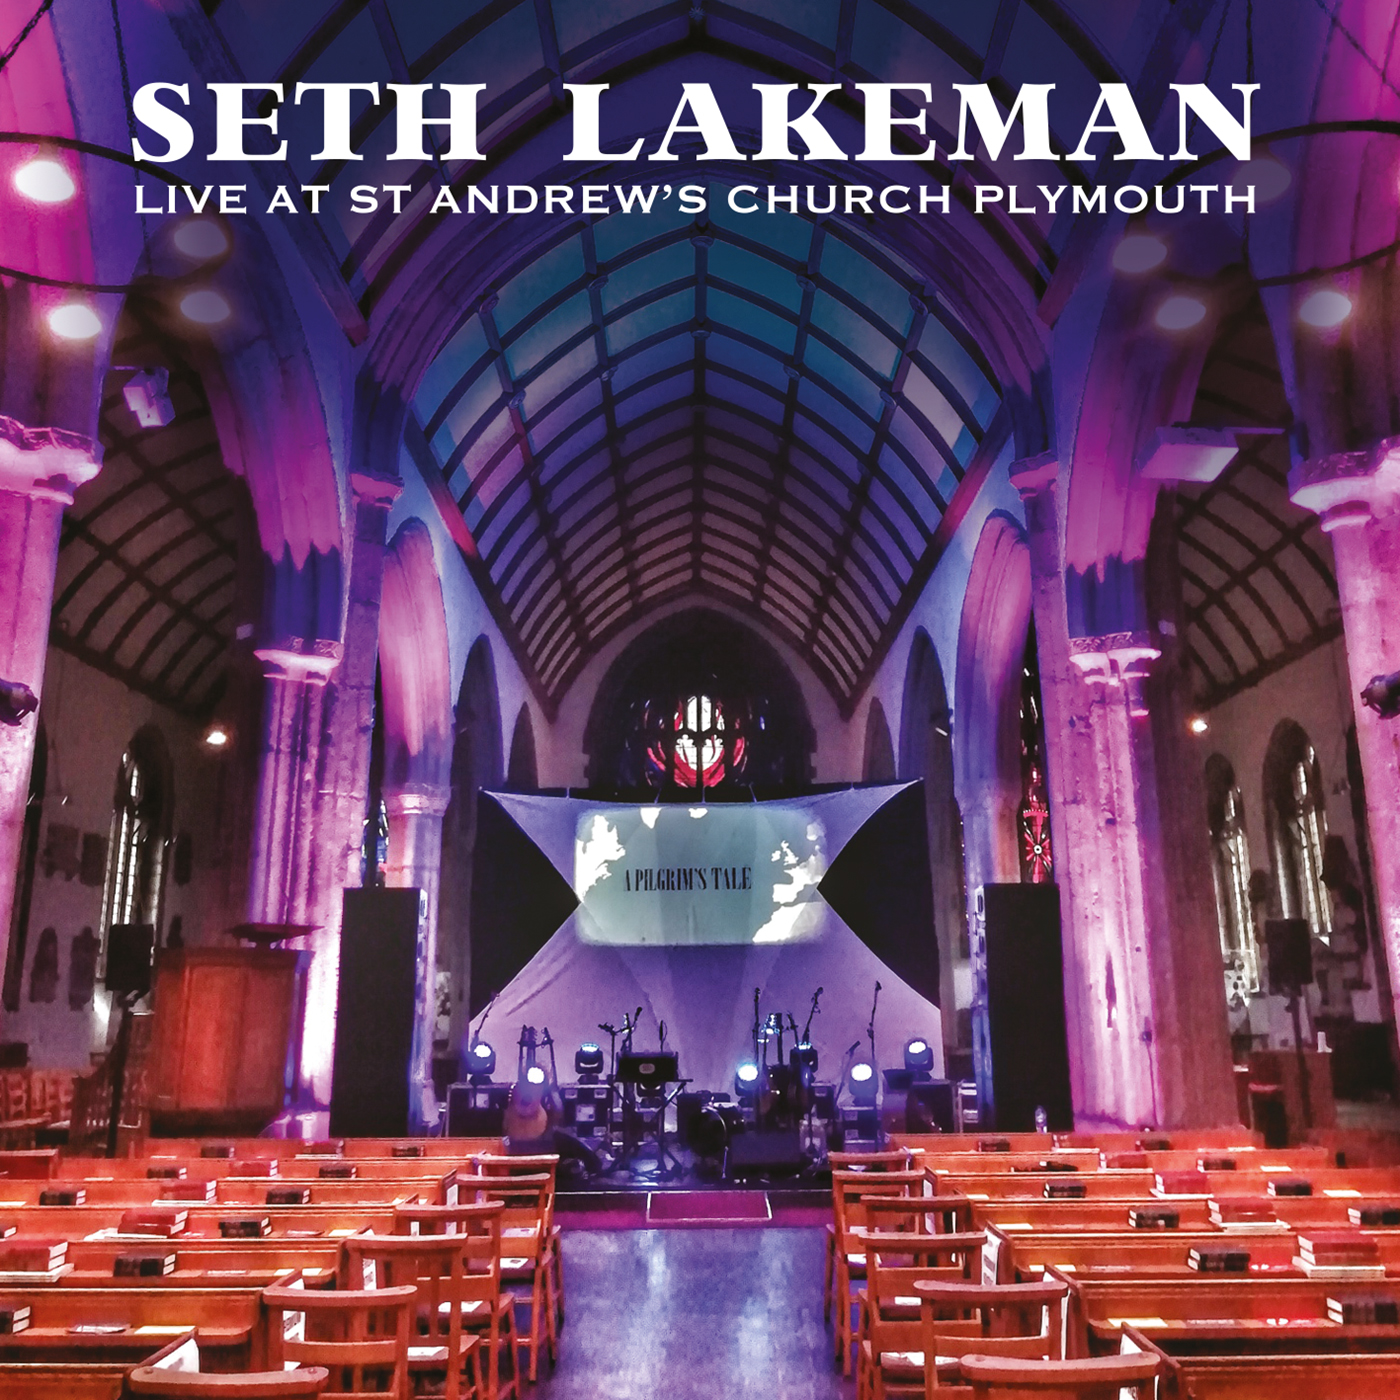 Buy Online Seth Lakeman - Live at St Andrew's Church Plymouth Digital Album